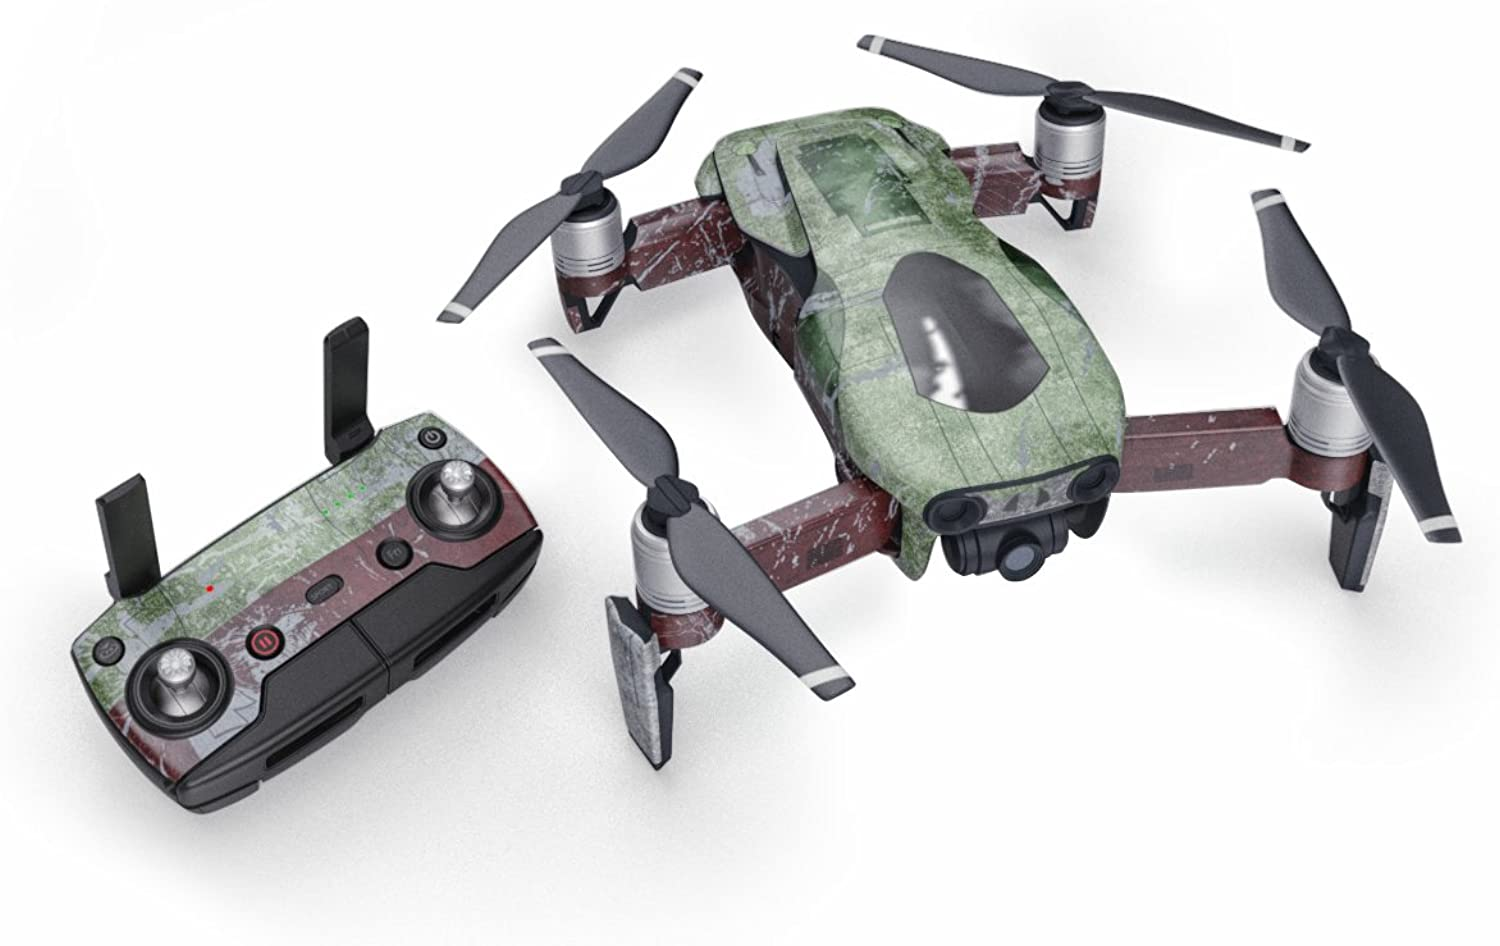 Slave I 51 Piece Decal Kit for DJI Mavic Air Drone  Includes Drone Skin, Controller Skin and 3 Battery Skin